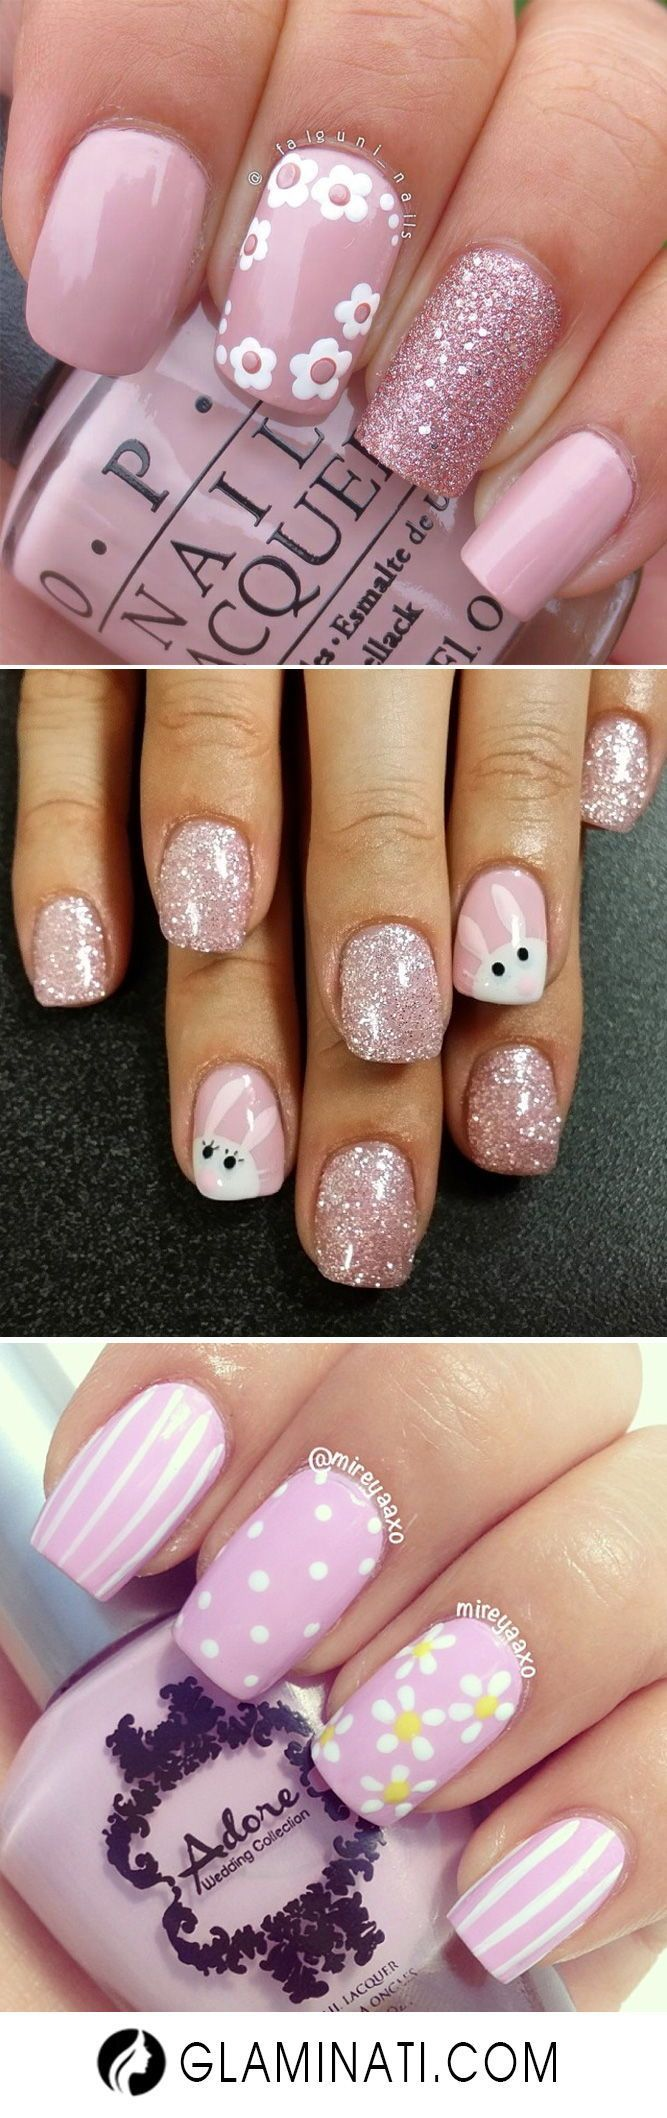 Easter nails have many possibilities to be done and reflect your